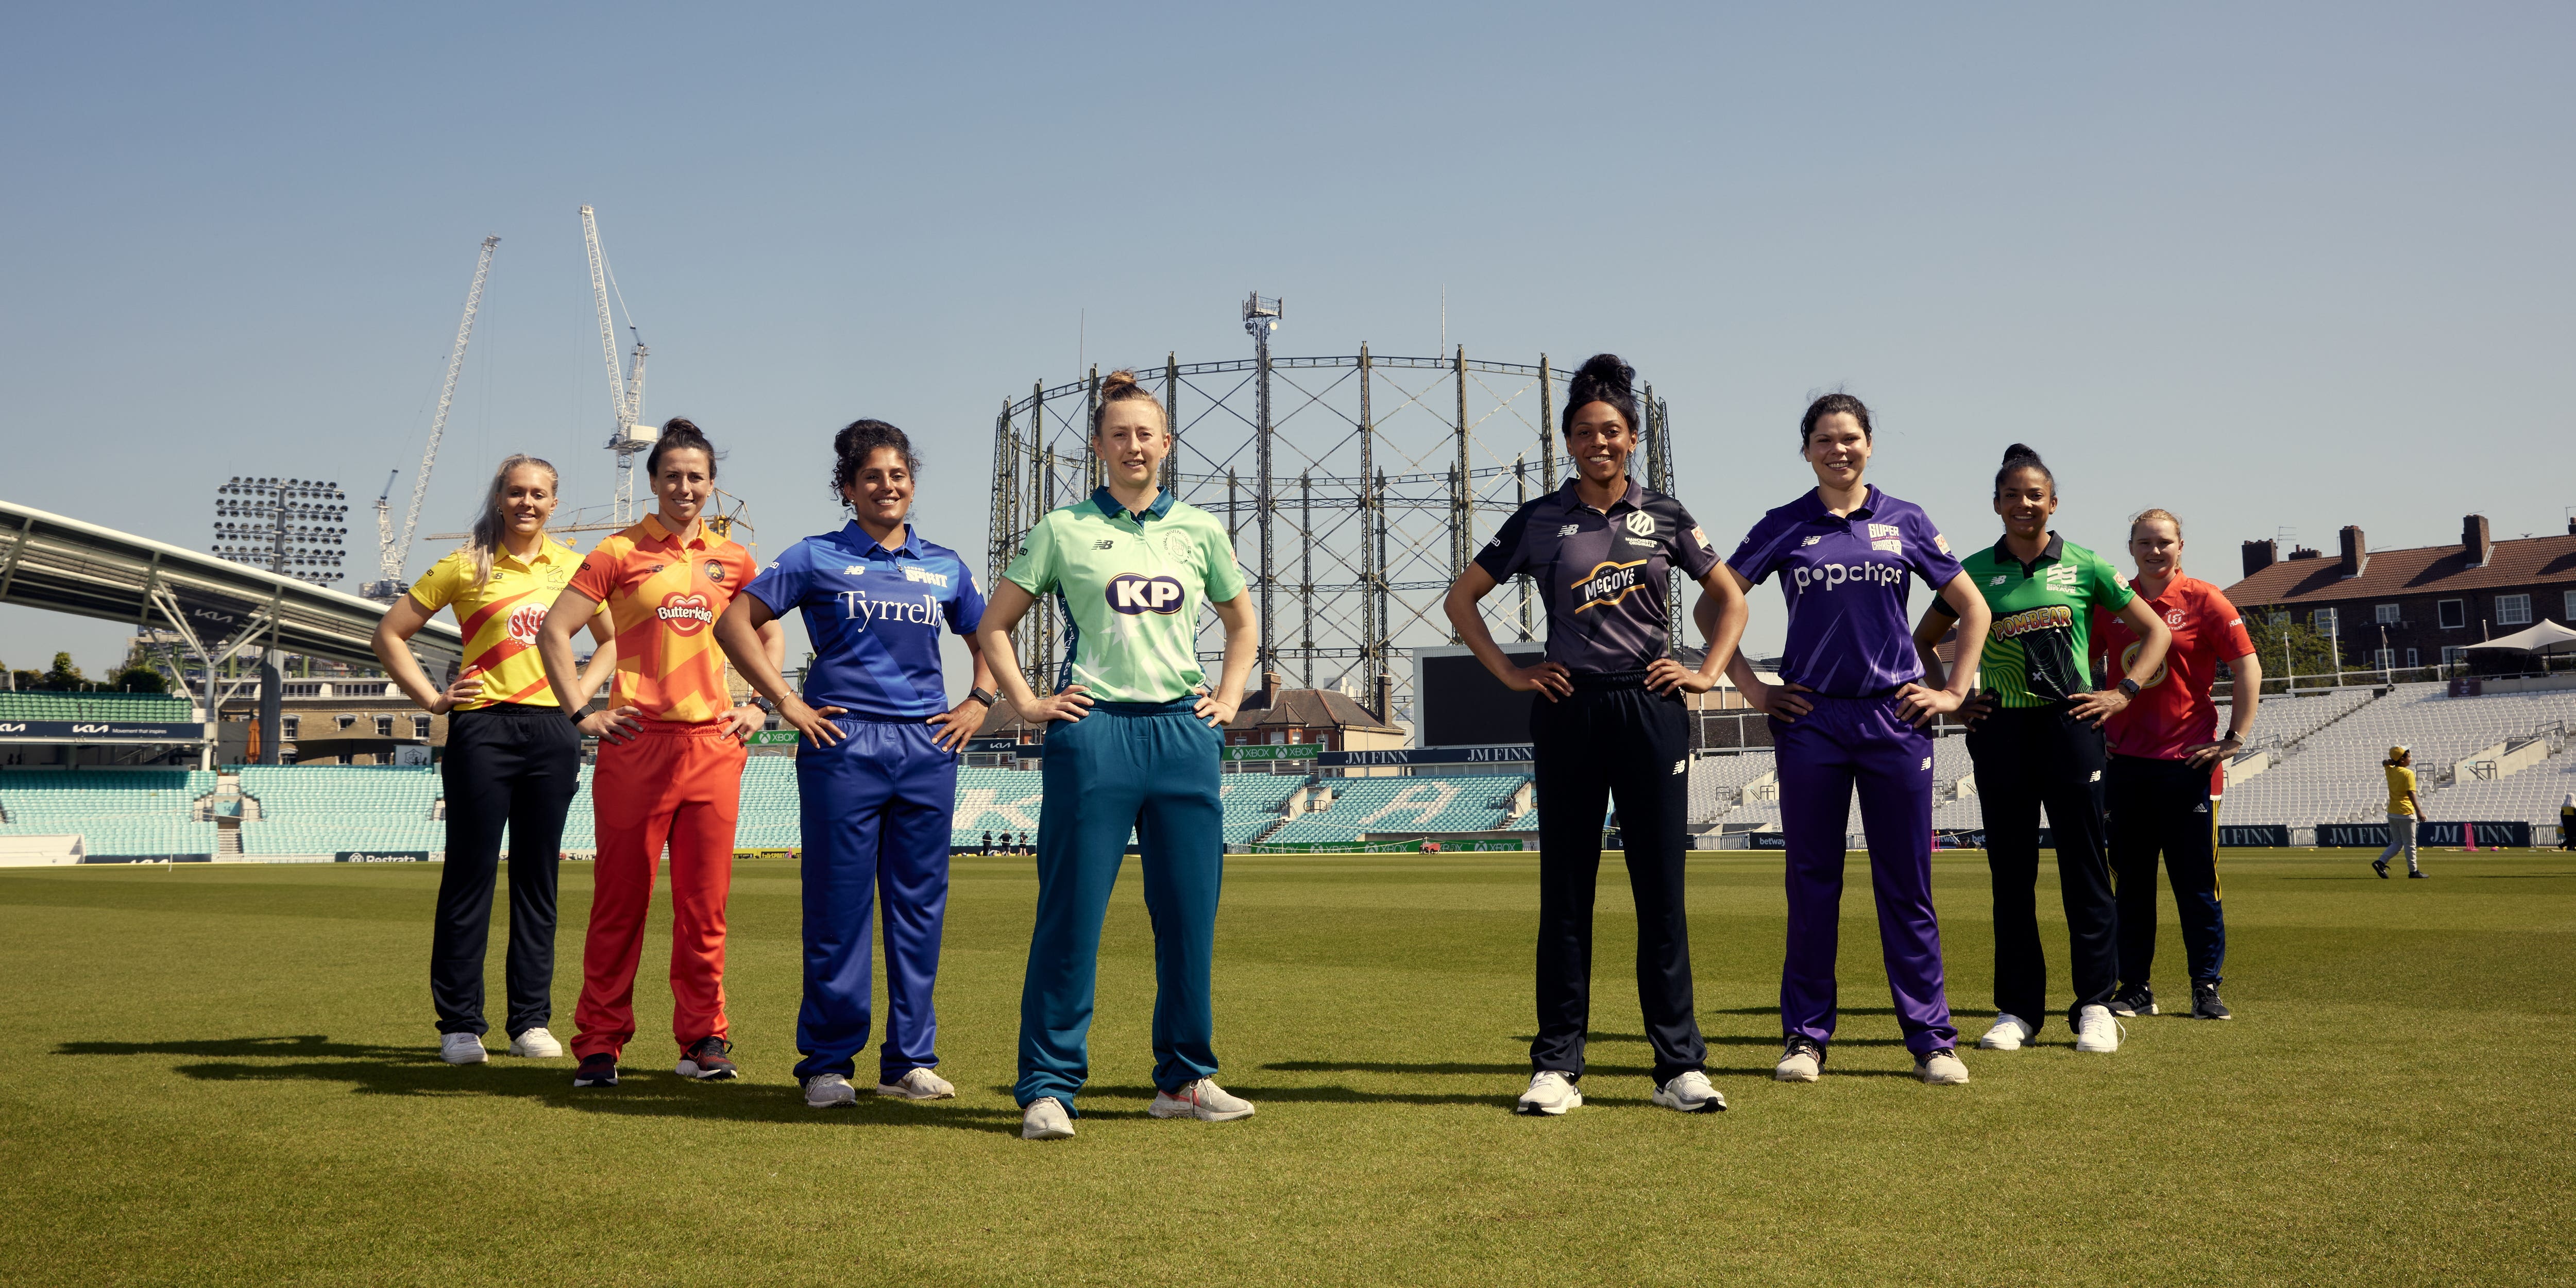 ECB to support Stonewall's Rainbow Laces campaign from July 30 to August 1